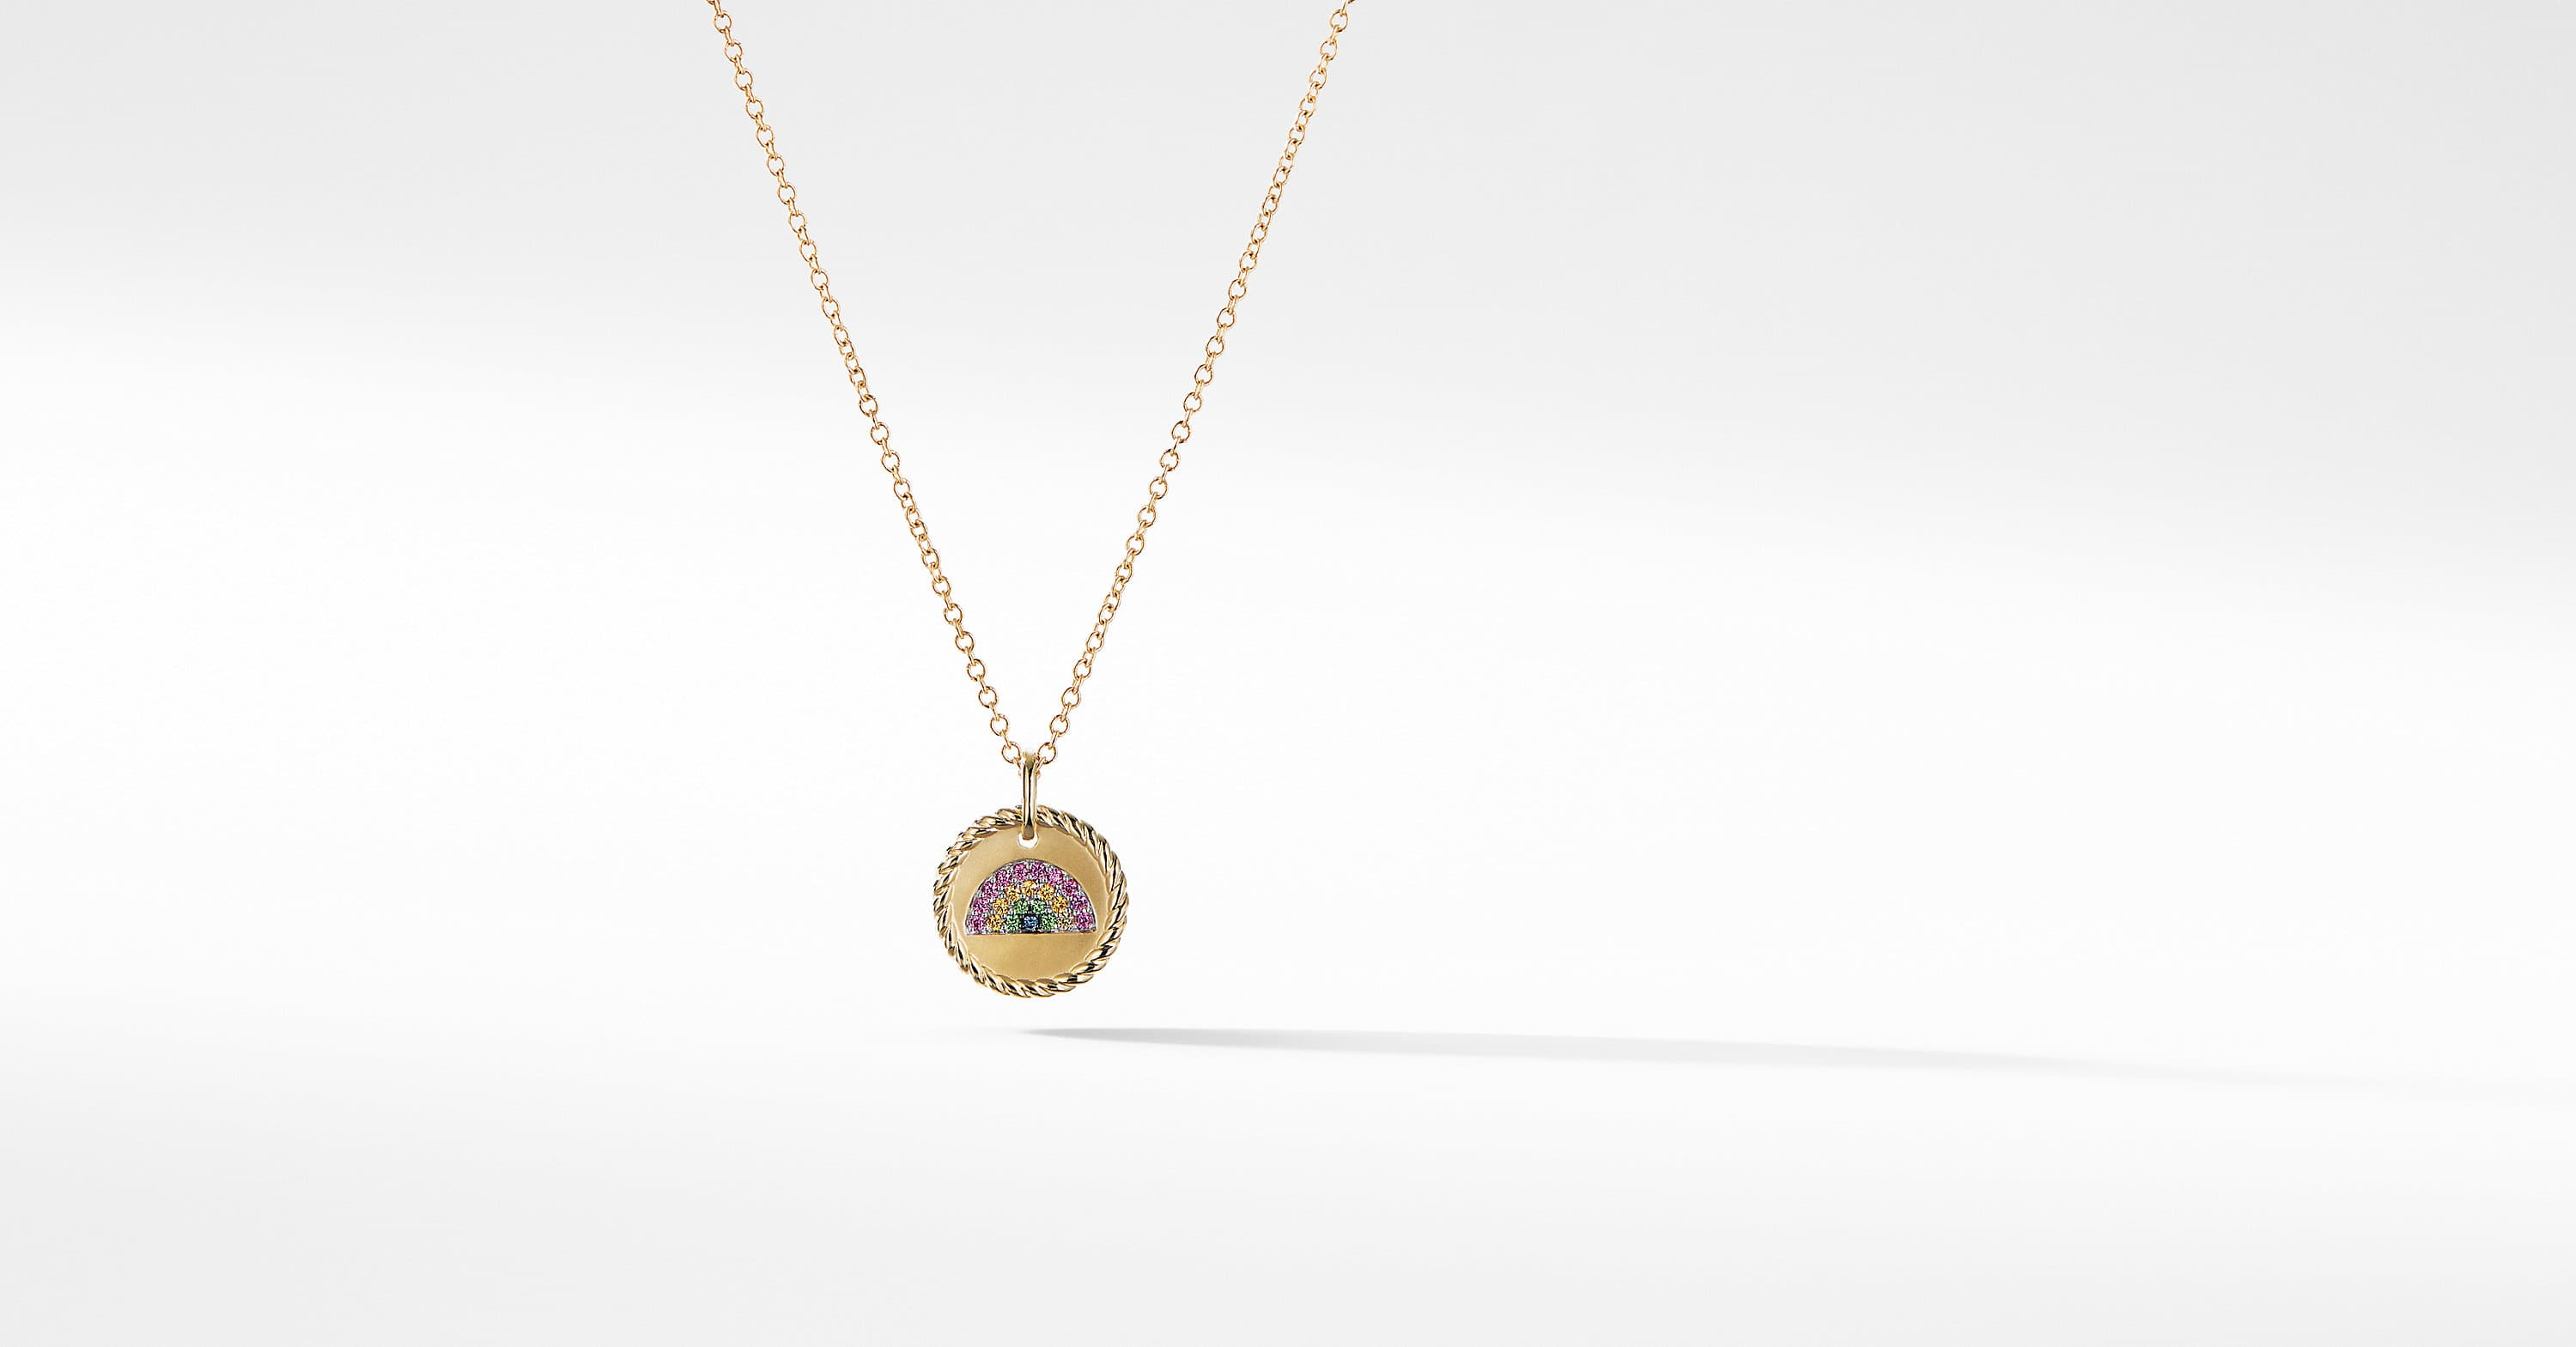 Cable Collectibles Rainbow Necklace in 18K Gold